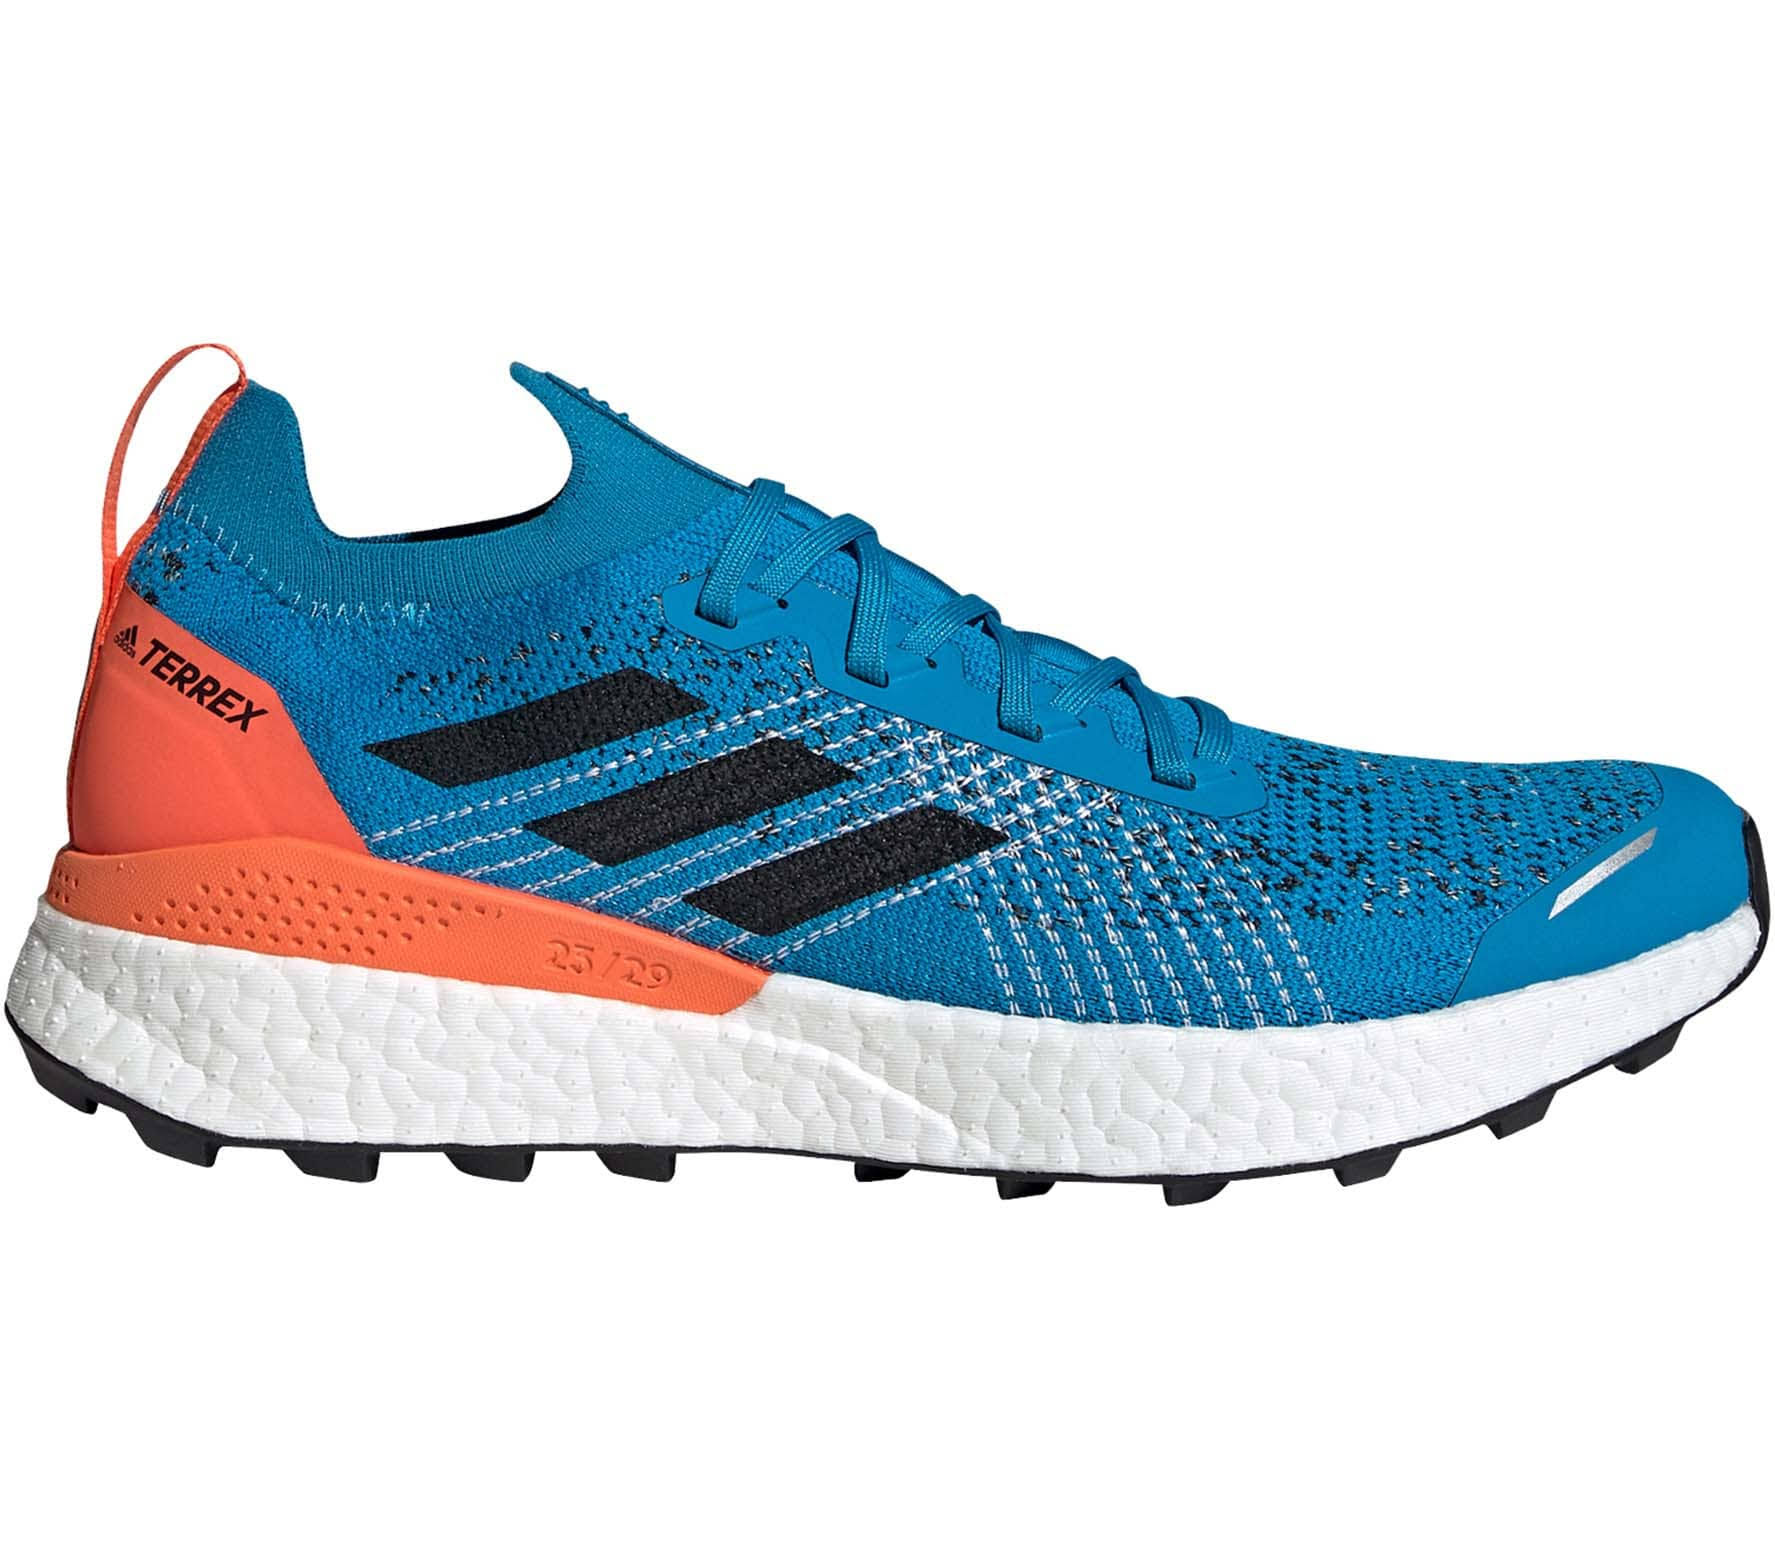 Adidas Terrex Two Ultra Parley Men Trailrunning Shoes Blue